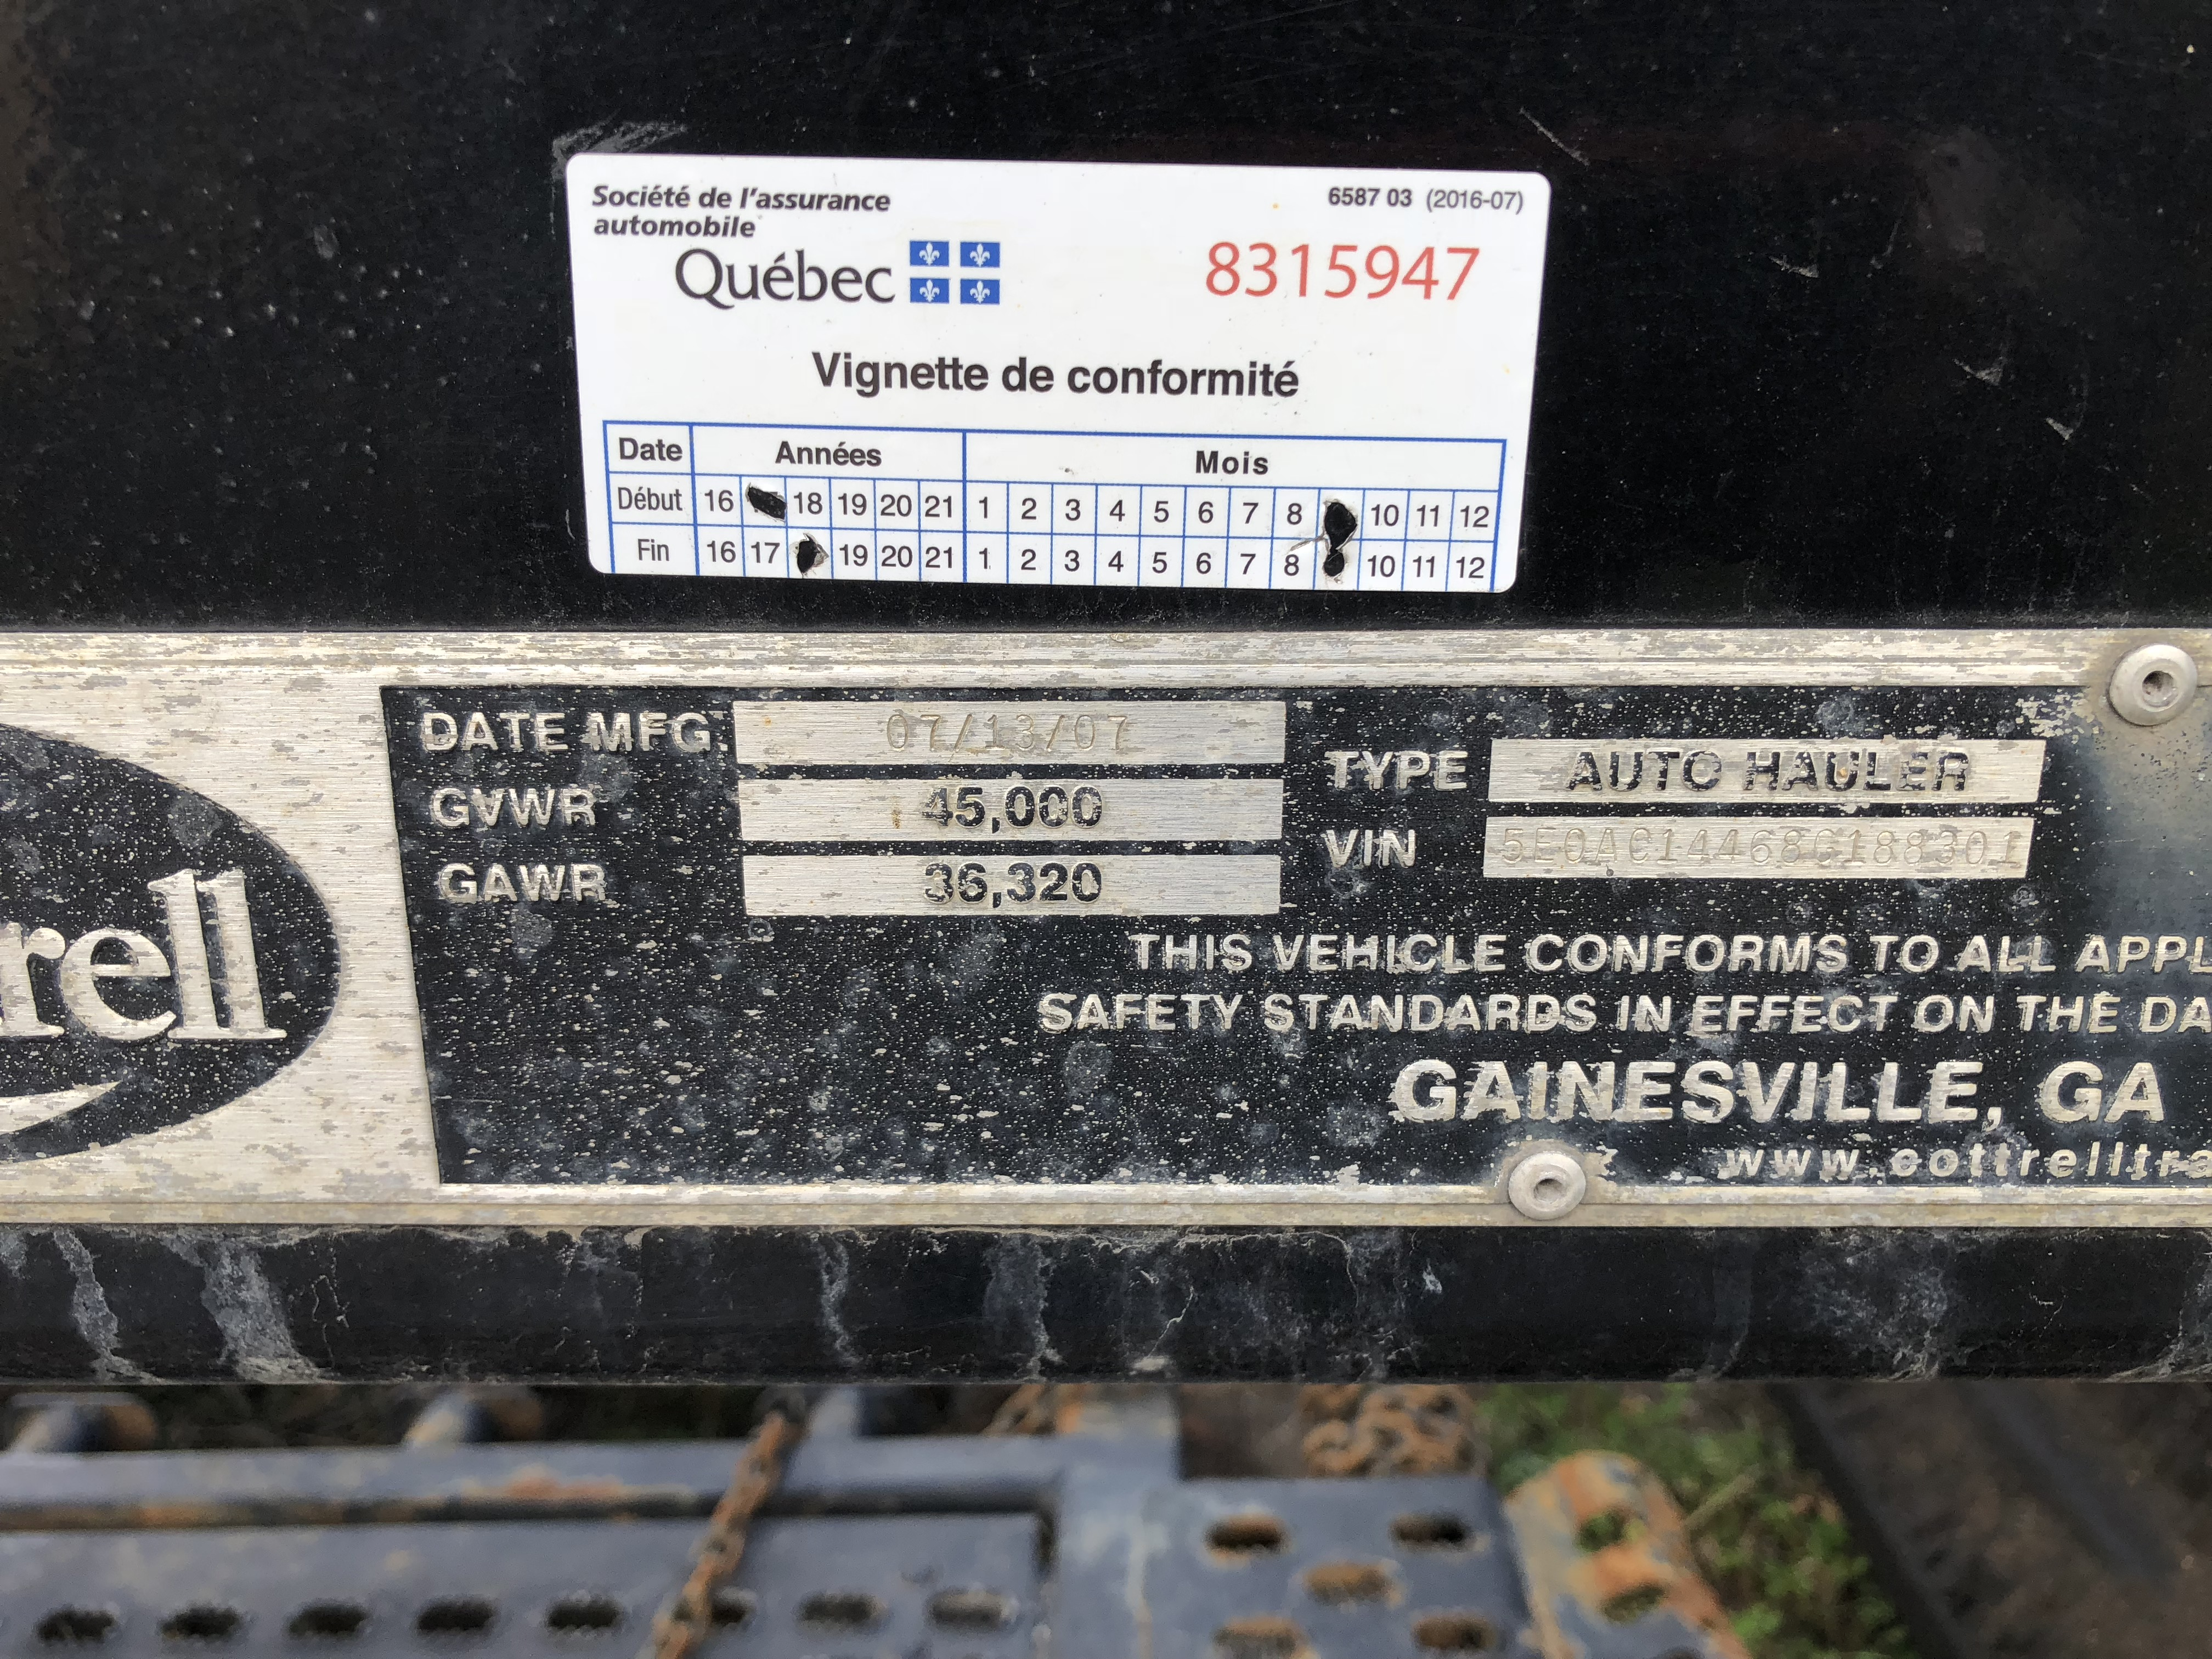 REMORQUE A VEHICULE COTTREL MODEL C-7512, CAPACITE 7 VEHICULES, S/N: 5E0A0144686188301 (2008) - Image 5 of 6